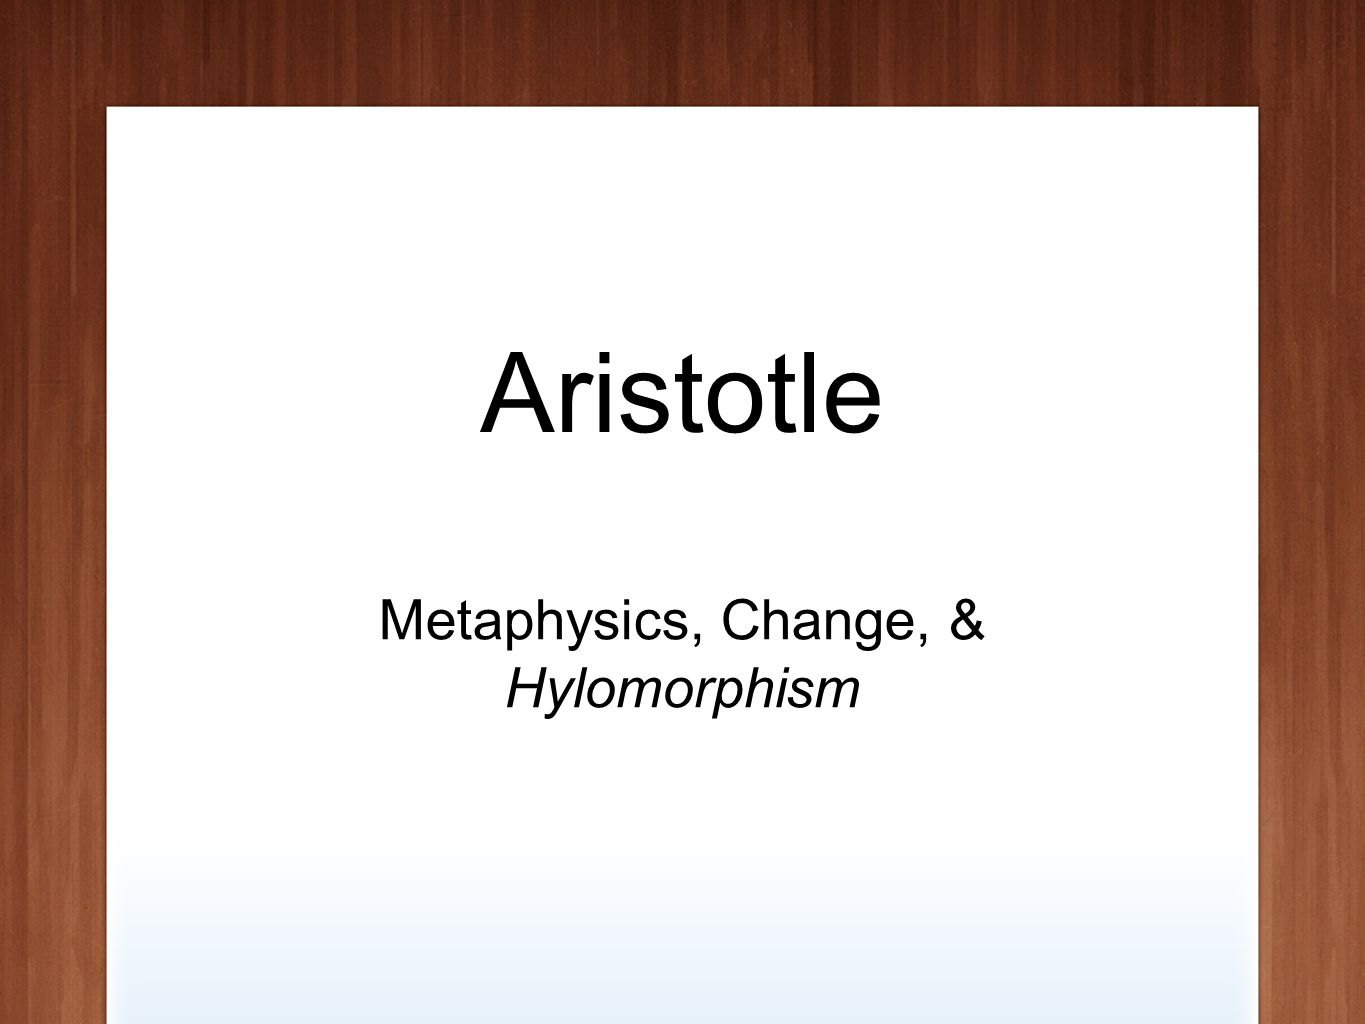 Aristotle Metaphysics, Change, & Hylomorphism